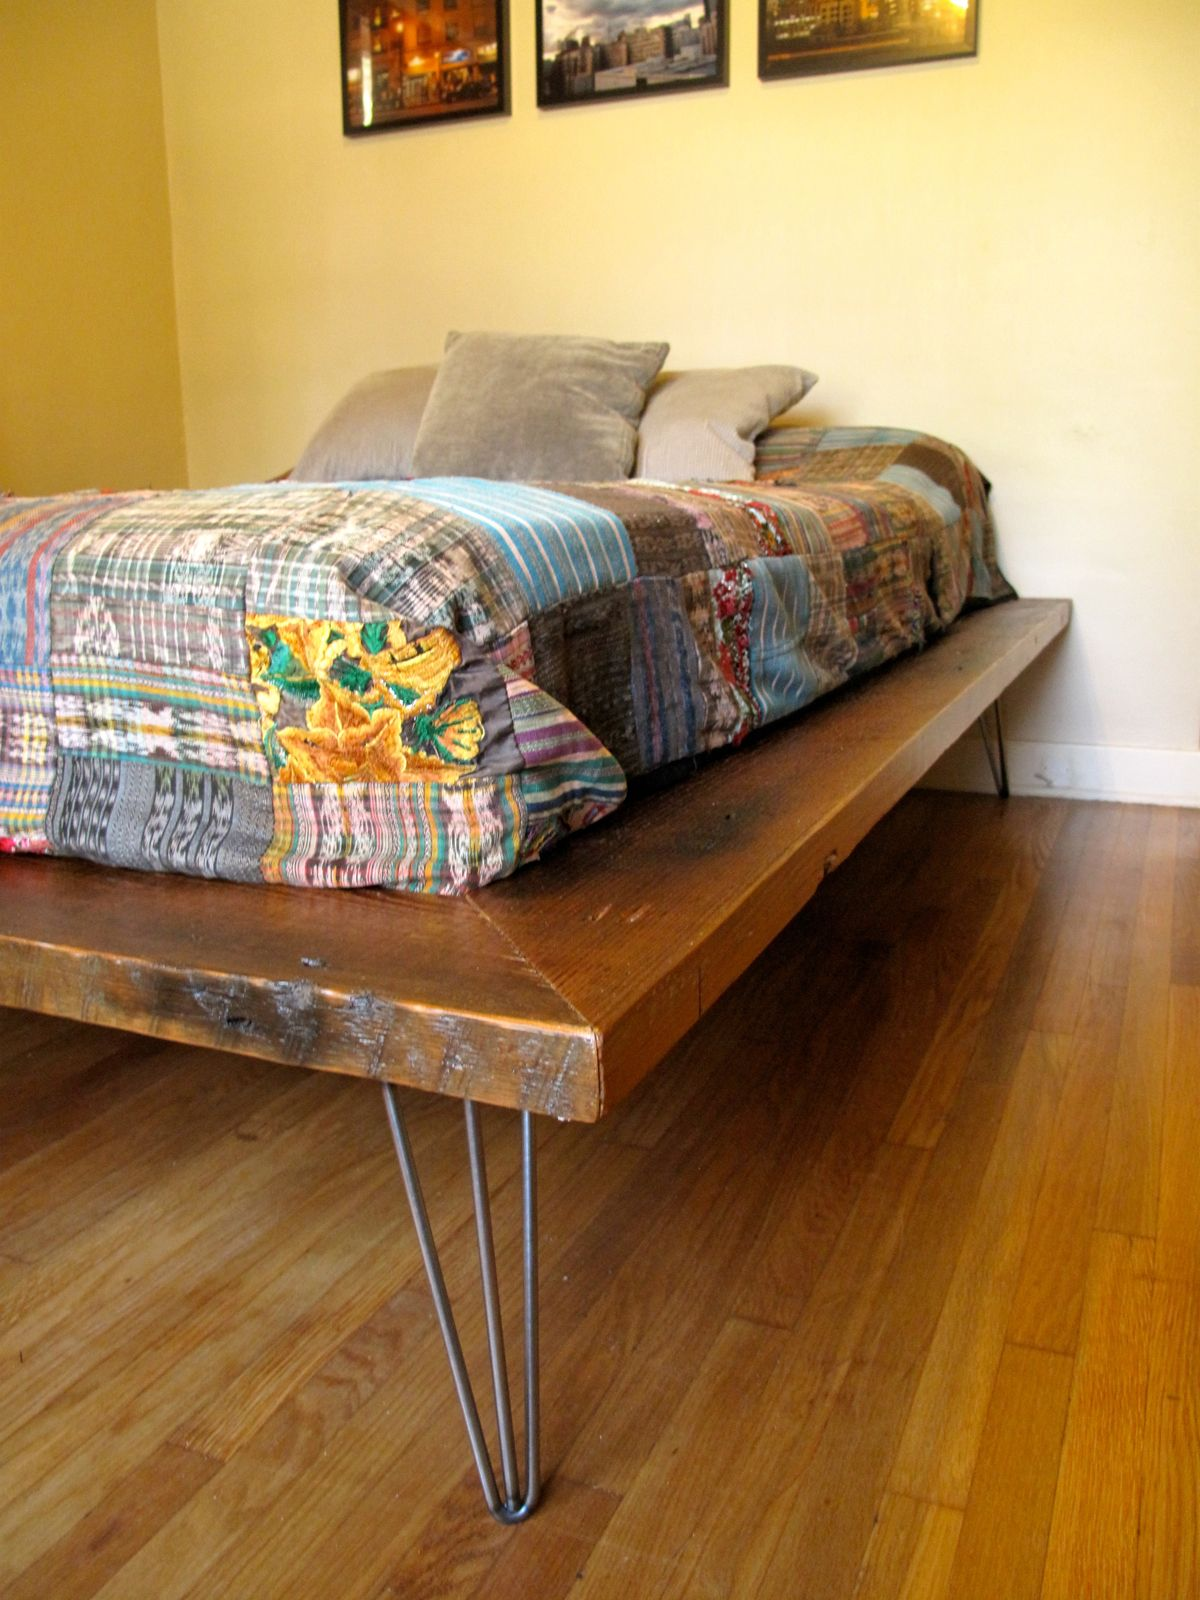 Bed design Arbor Exchange | Reclaimed Wood Furniture: Platform Bed + ...